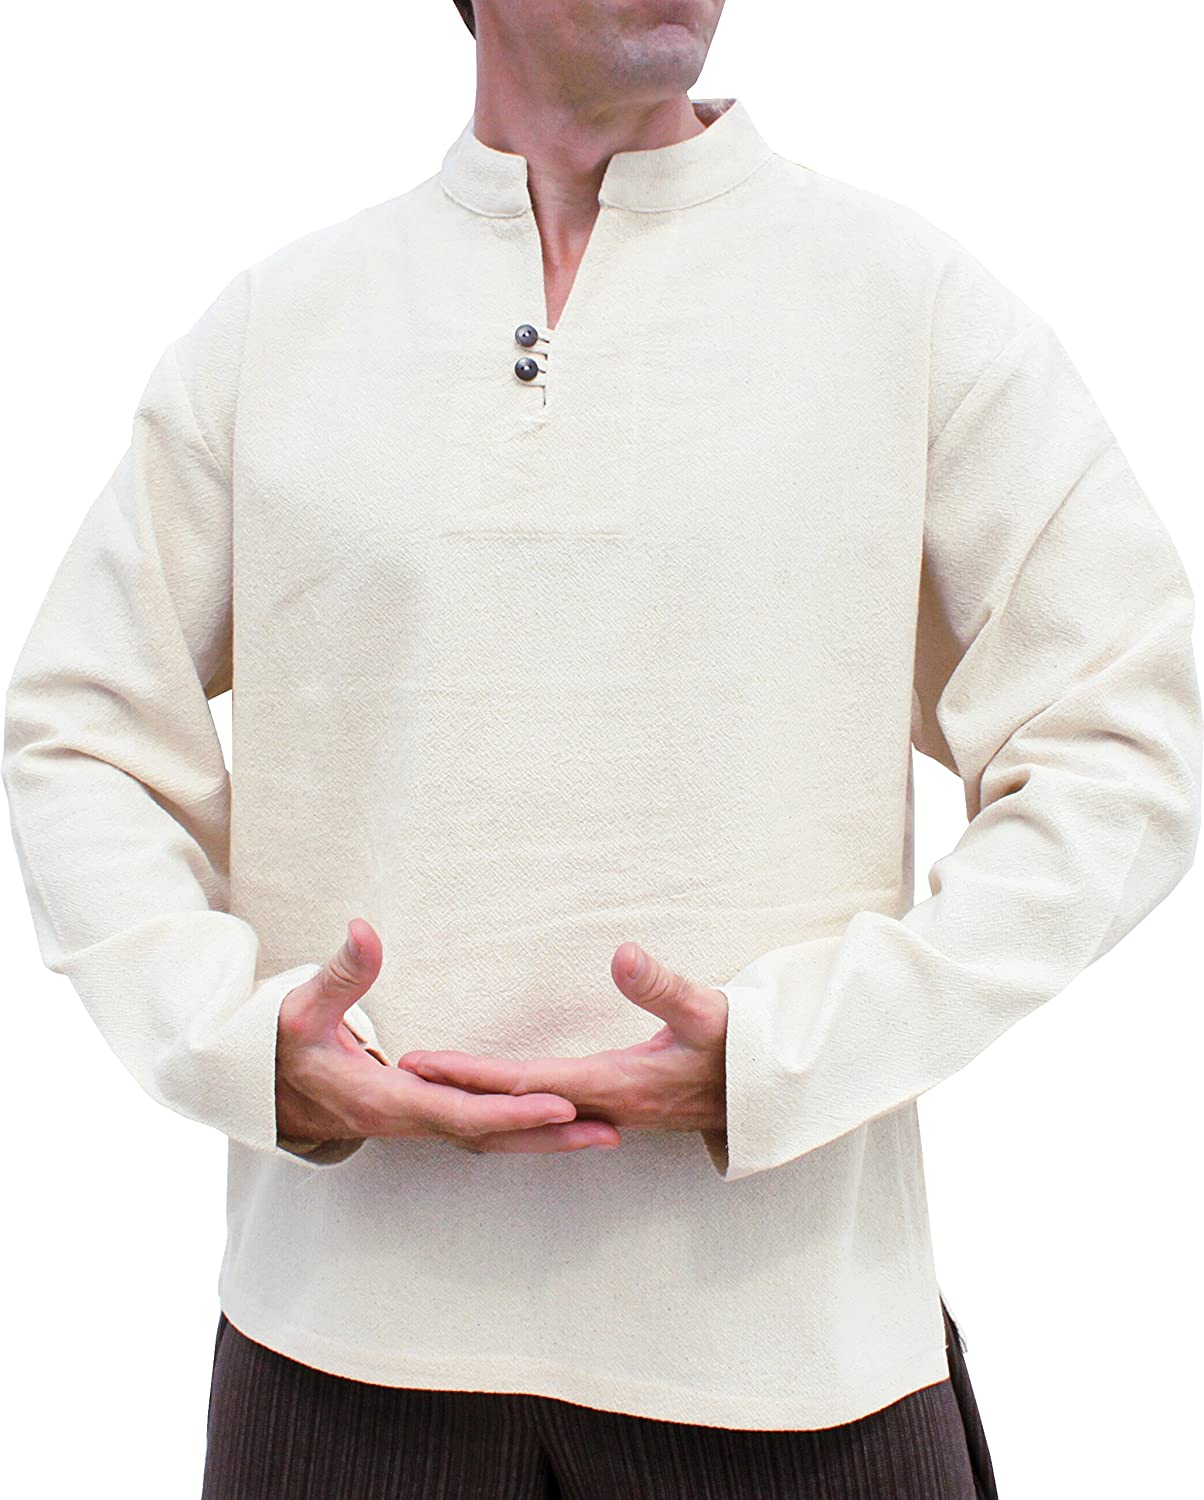 RaanPahMuang Soft Light Stamped Cotton Shirt Chinese Collar Two Button Longsleeve